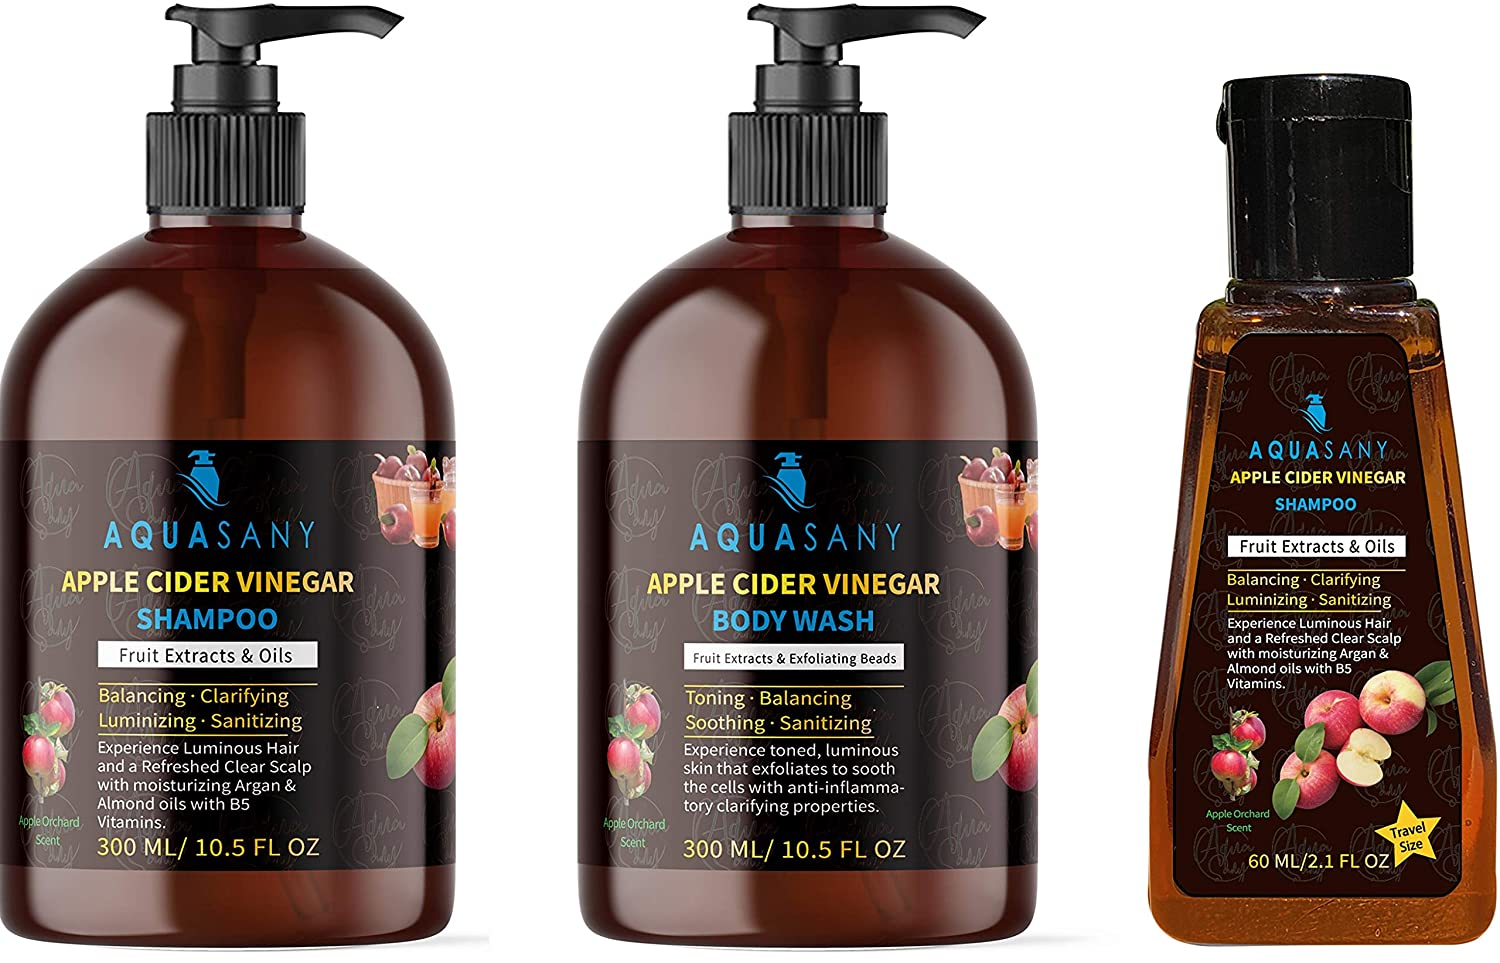 3-Pack Apple Cider Vinegar Shampoo & Exfoliating Body Wash Set with Travel Bottle, Fuller Shinier Hair & Healthier Scalp with Antioxidant Anti-Inflammatory Soothing Herbal Clarifying Extracts, Argan & Almond Hydrating Oils, B5 Vitamins, Sanitizing Oregano Oil, Apple Orchard Scents